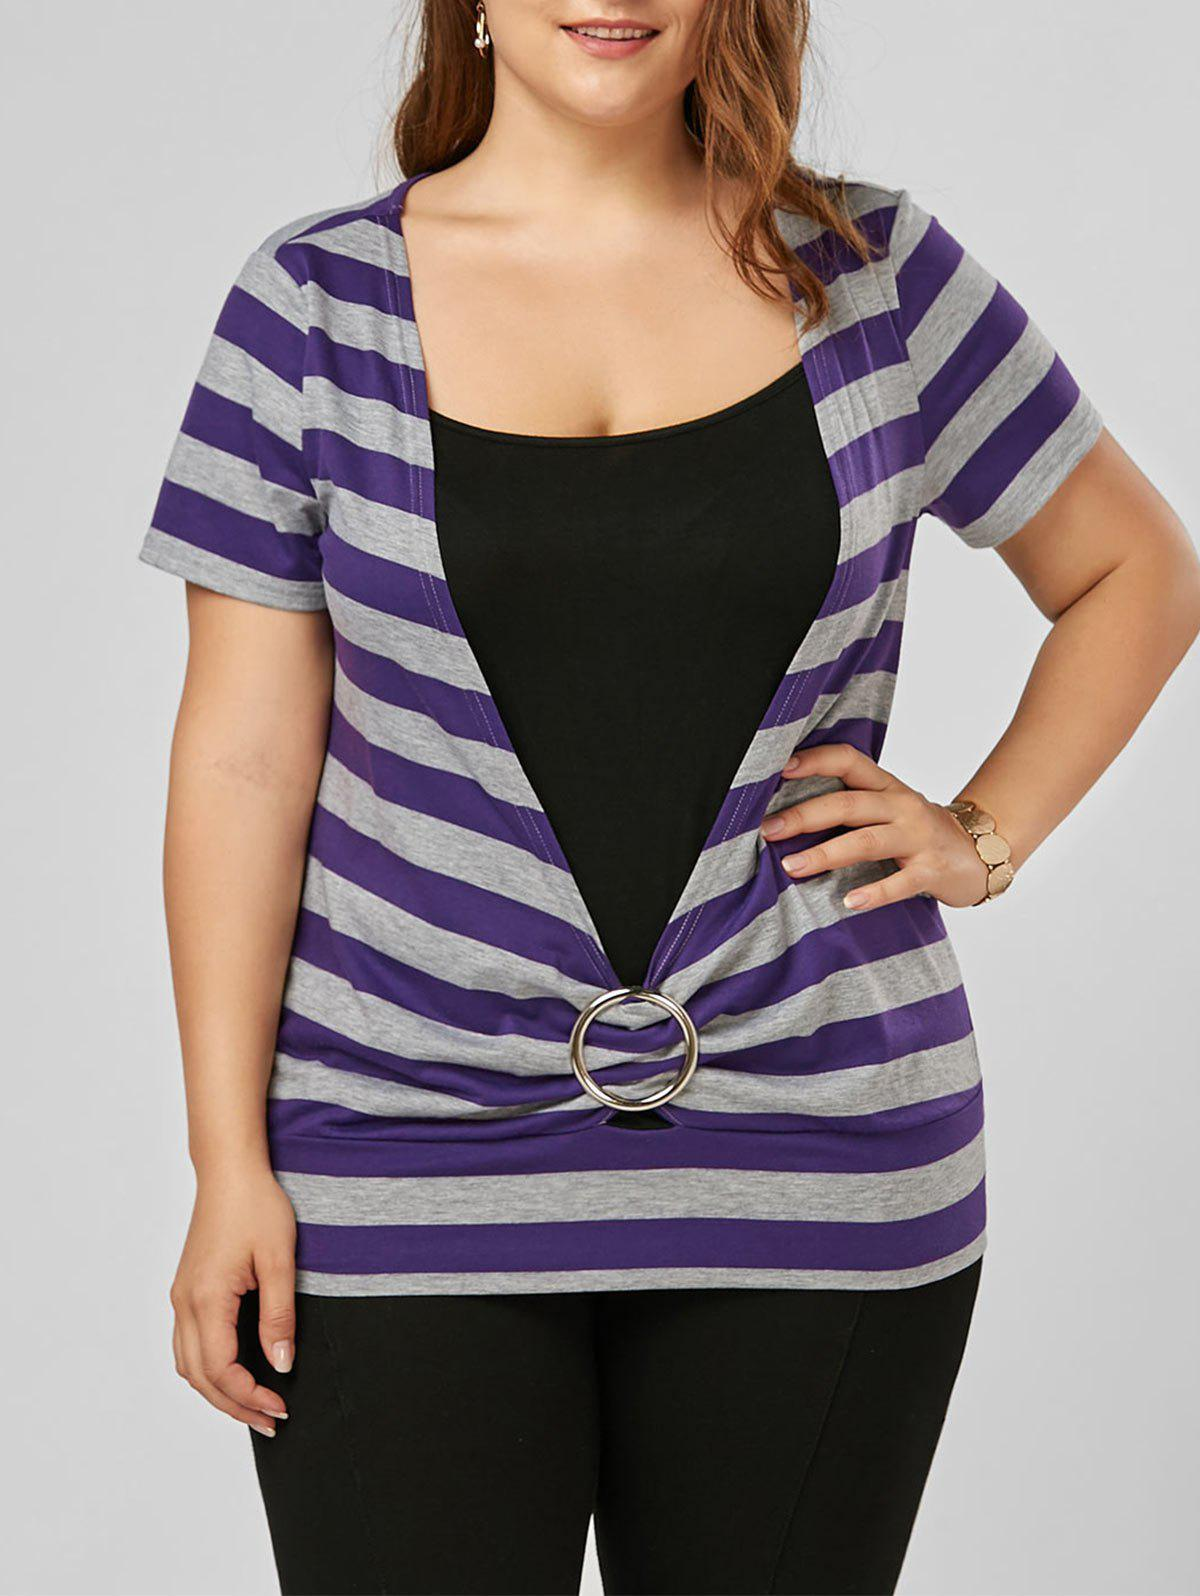 Striped Plus Size T-ShirtWOMEN<br><br>Size: 2XL; Color: PURPLE; Material: Polyester; Shirt Length: Regular; Sleeve Length: Short; Collar: Scoop Neck; Style: Casual; Season: Summer; Pattern Type: Striped; Weight: 0.2000kg; Package Contents: 1 x T-Shirt;